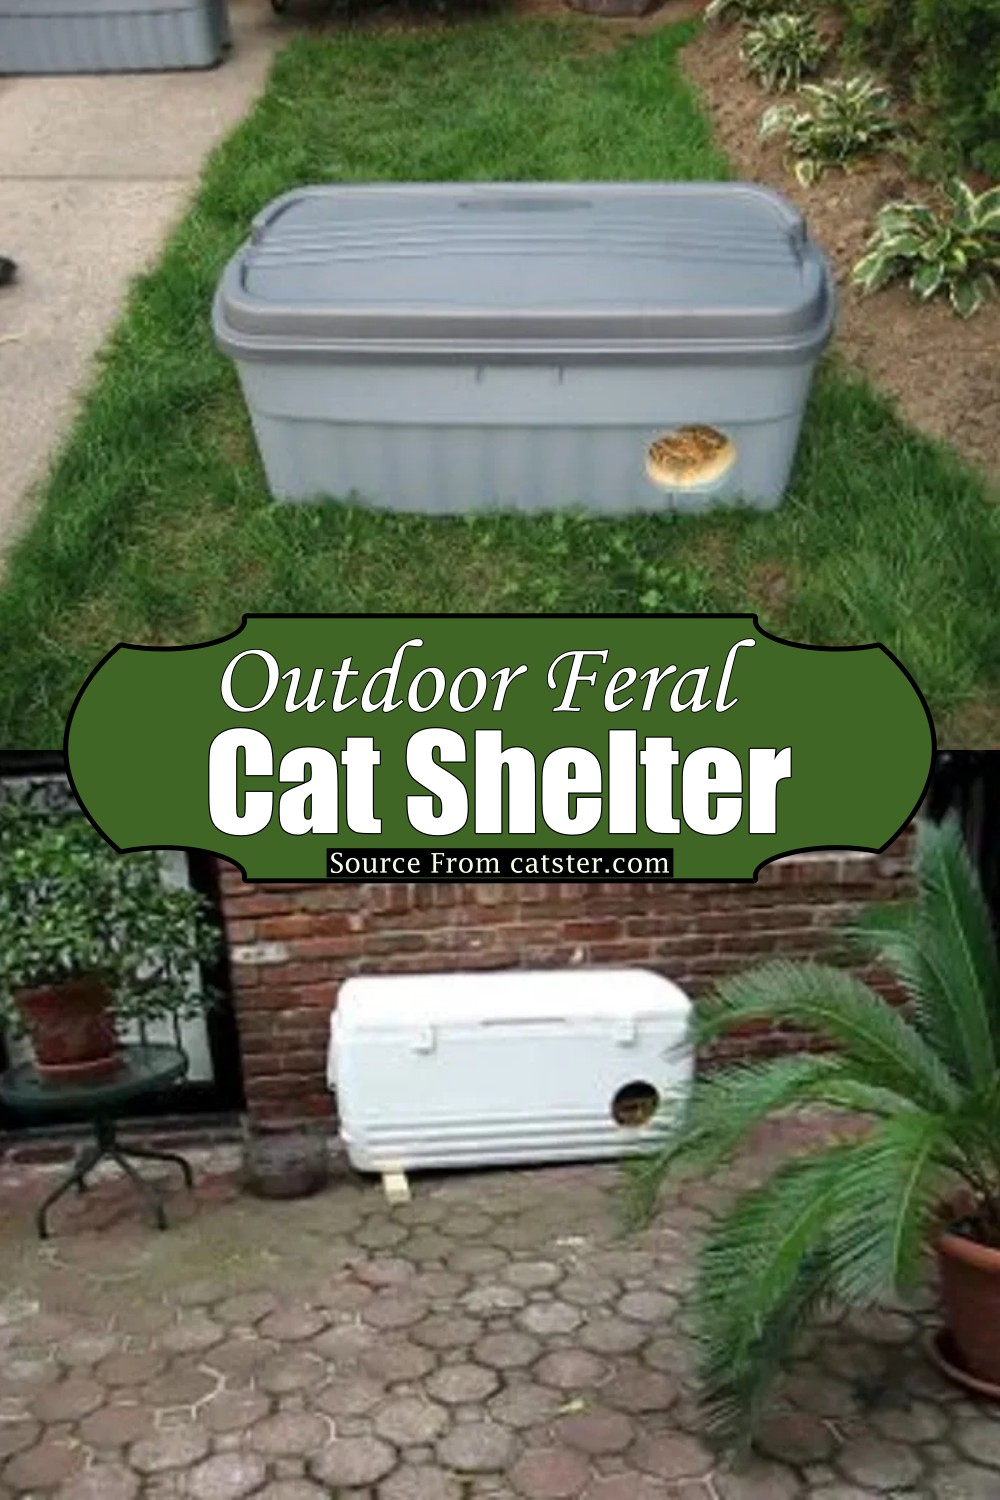 Outdoor Feral Cat Shelter